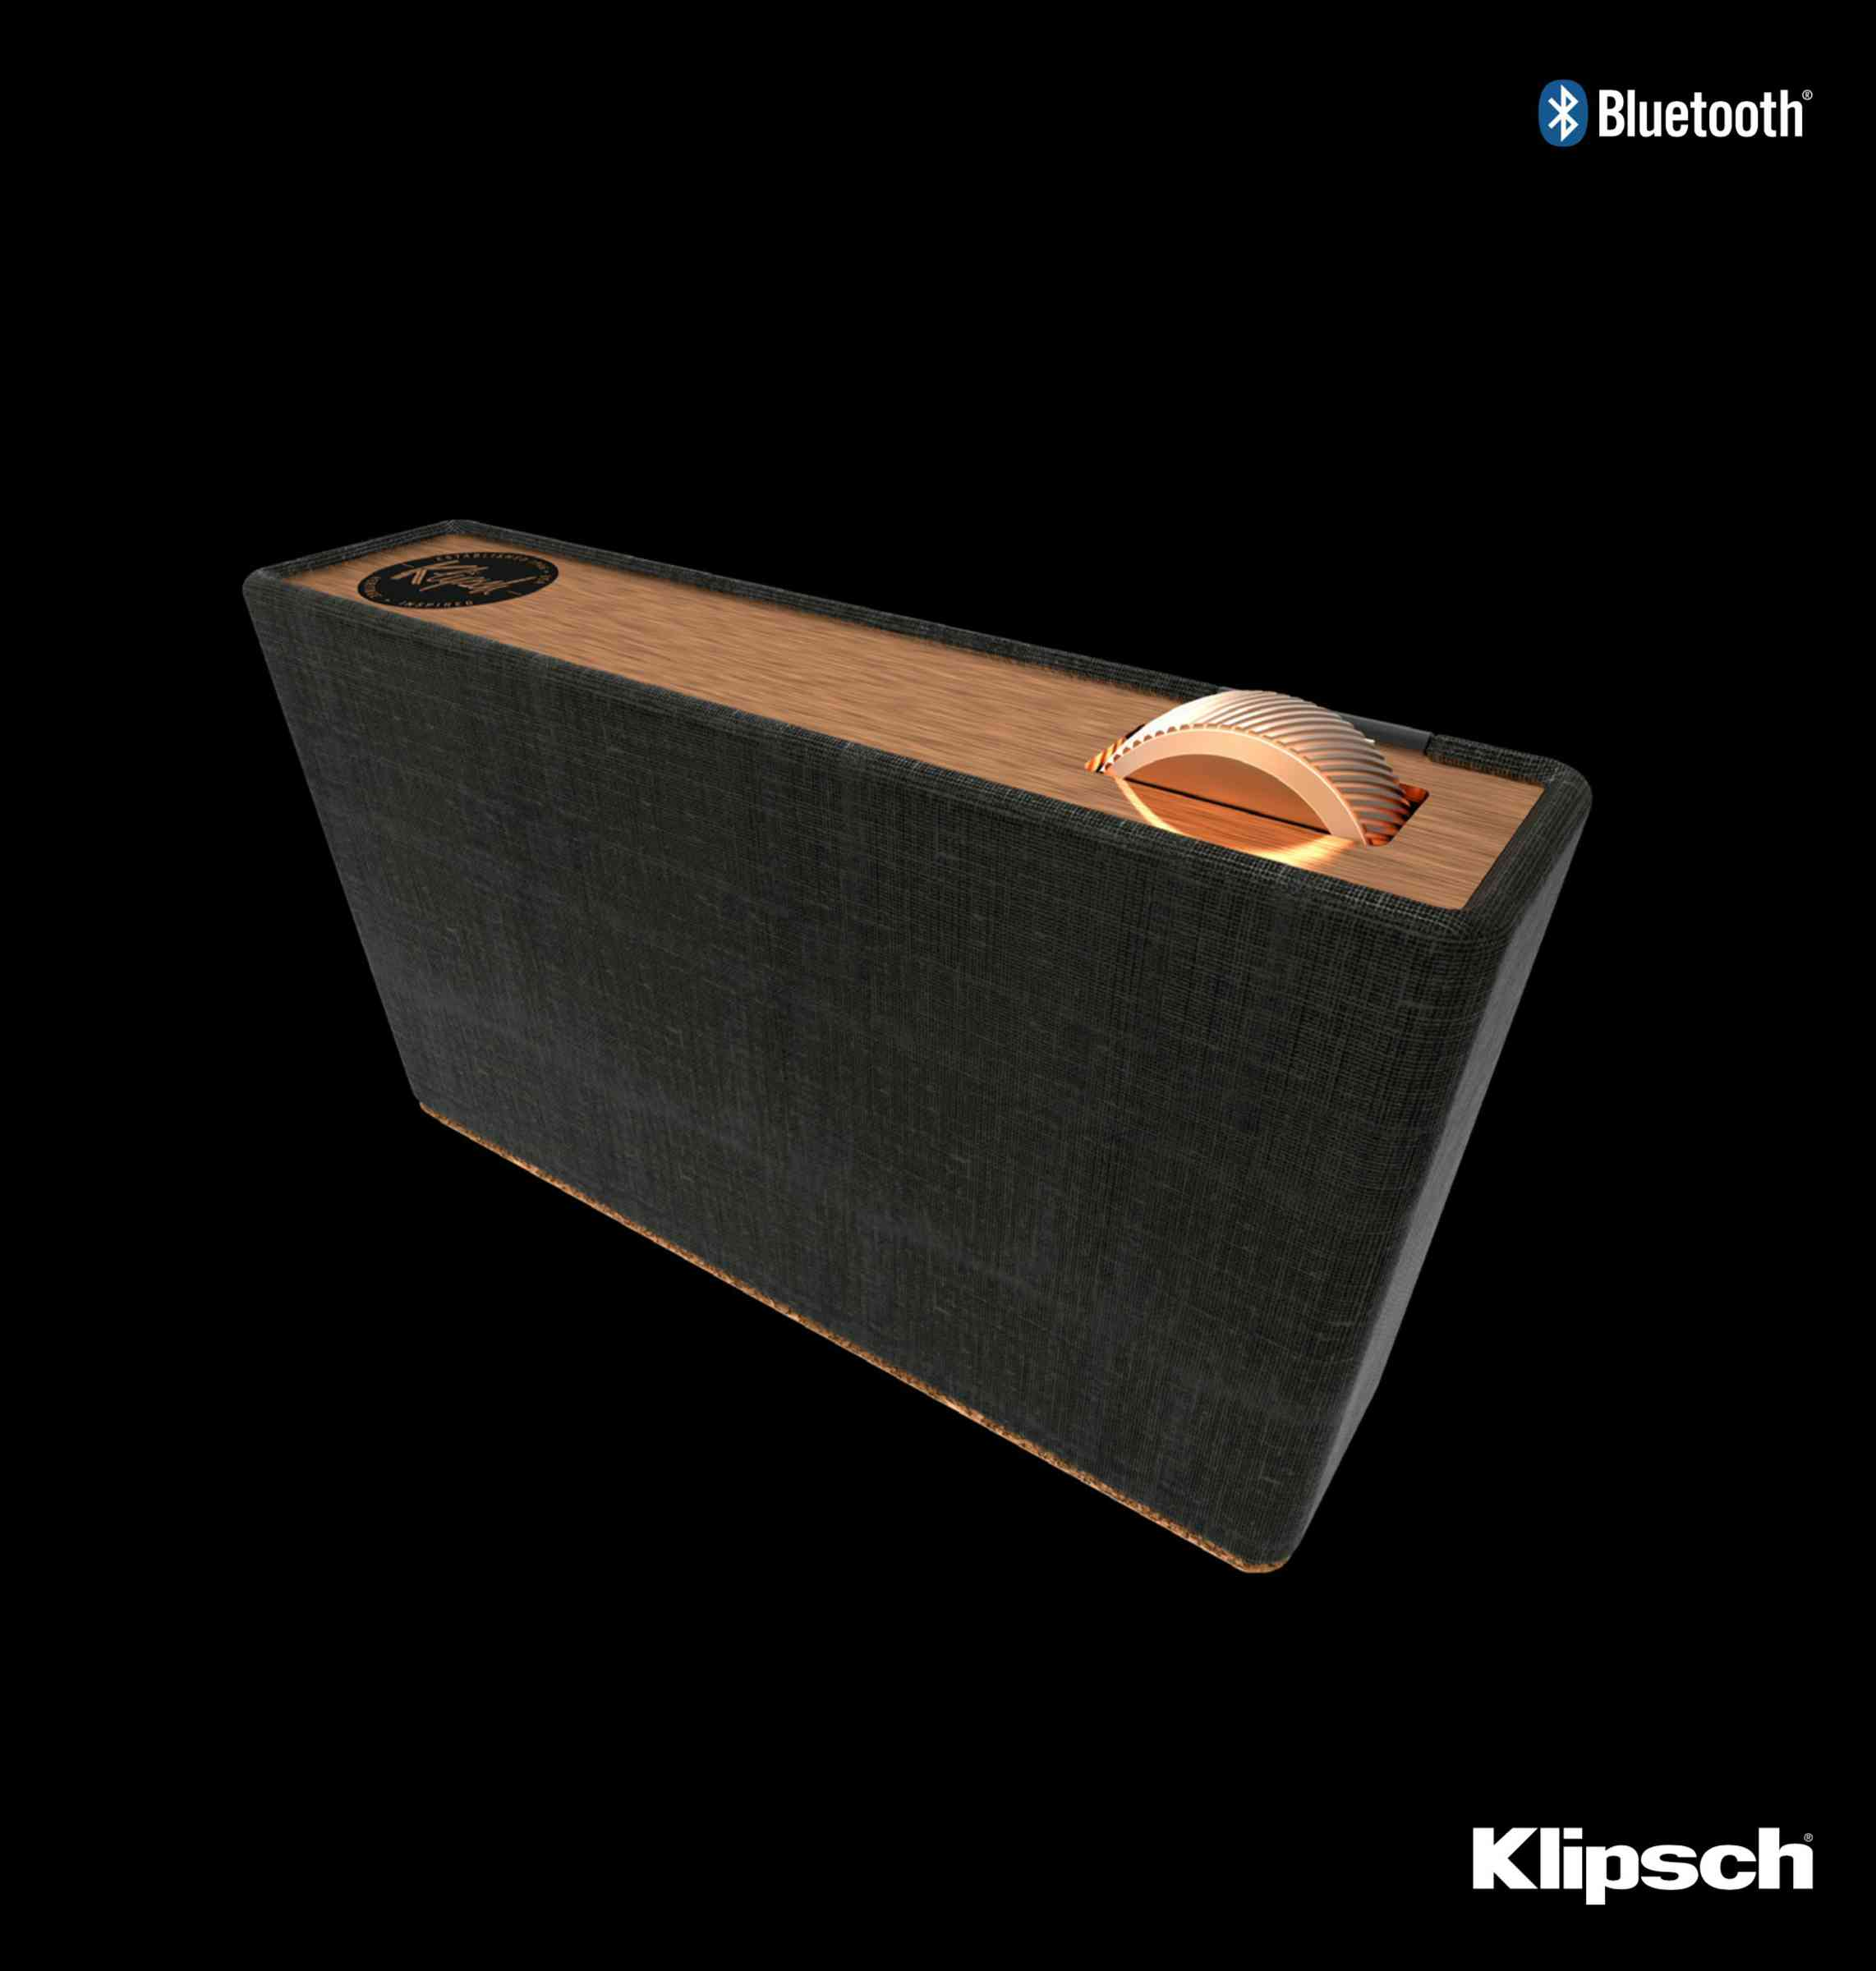 klipsch the mini